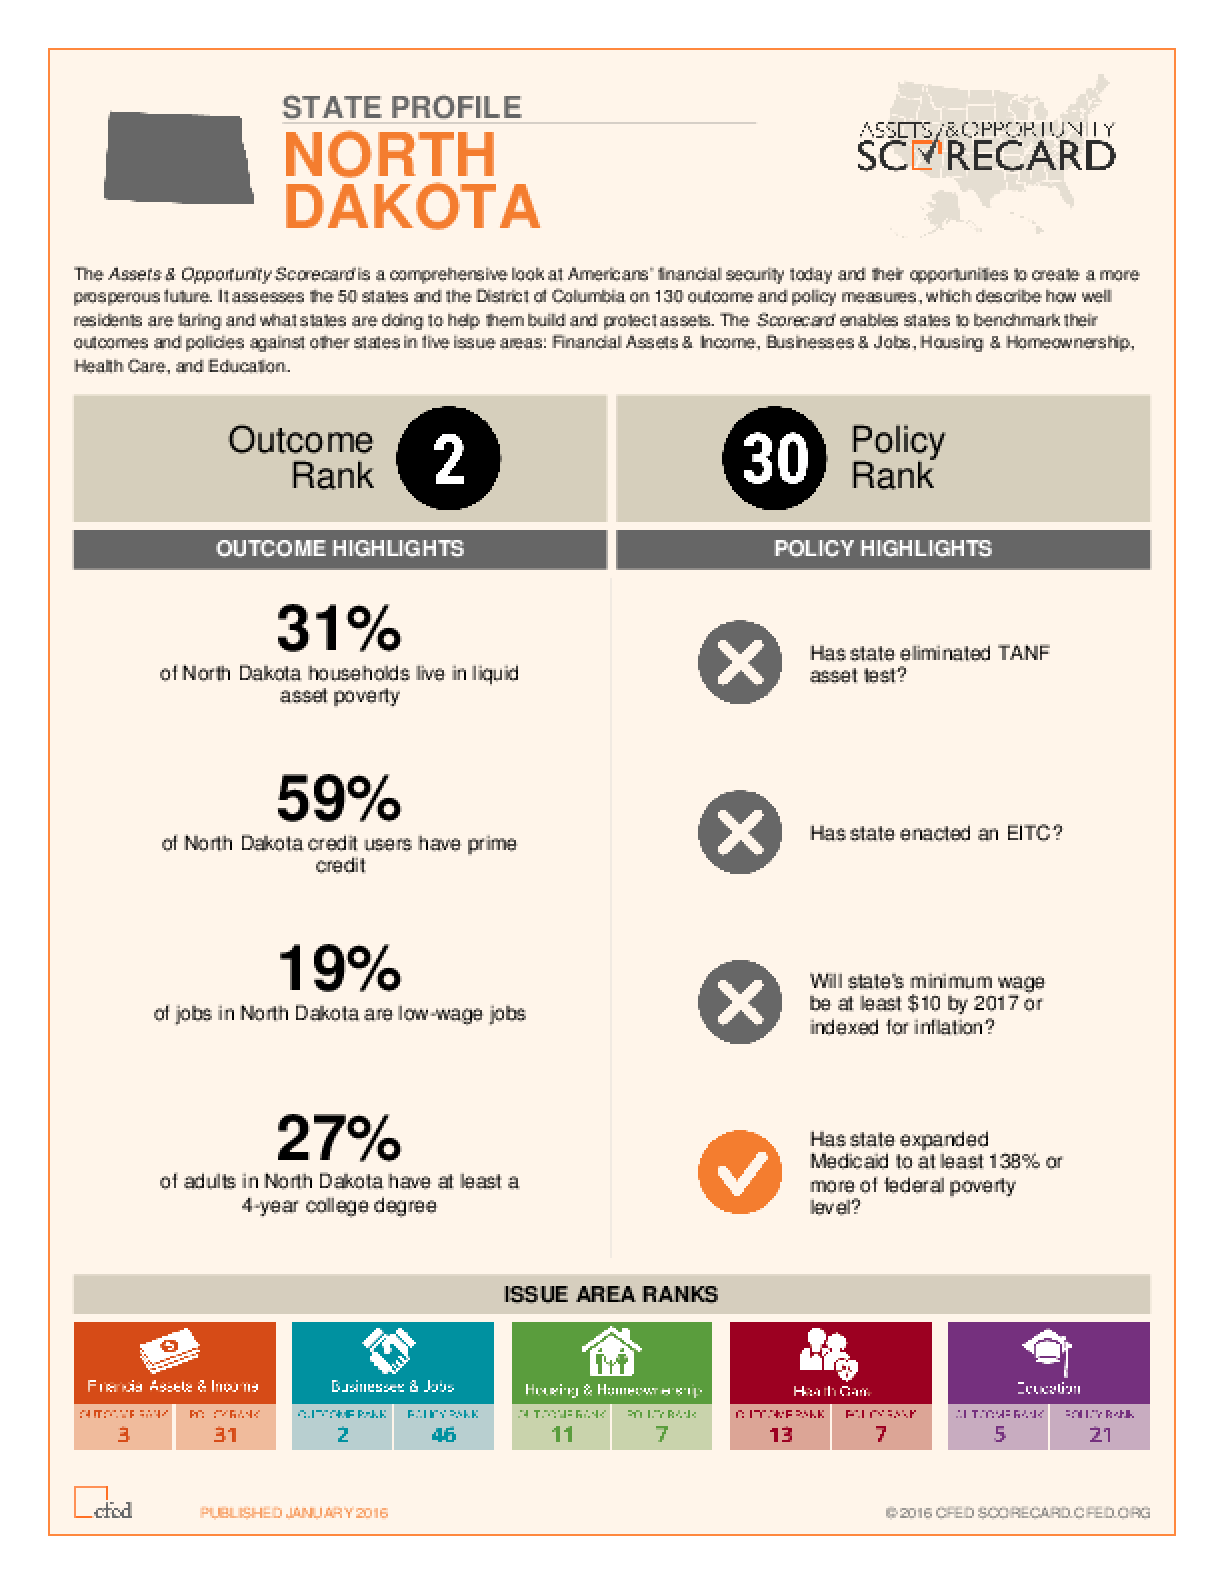 State Profile North Dakota: Assets and Opportunity Scorecard